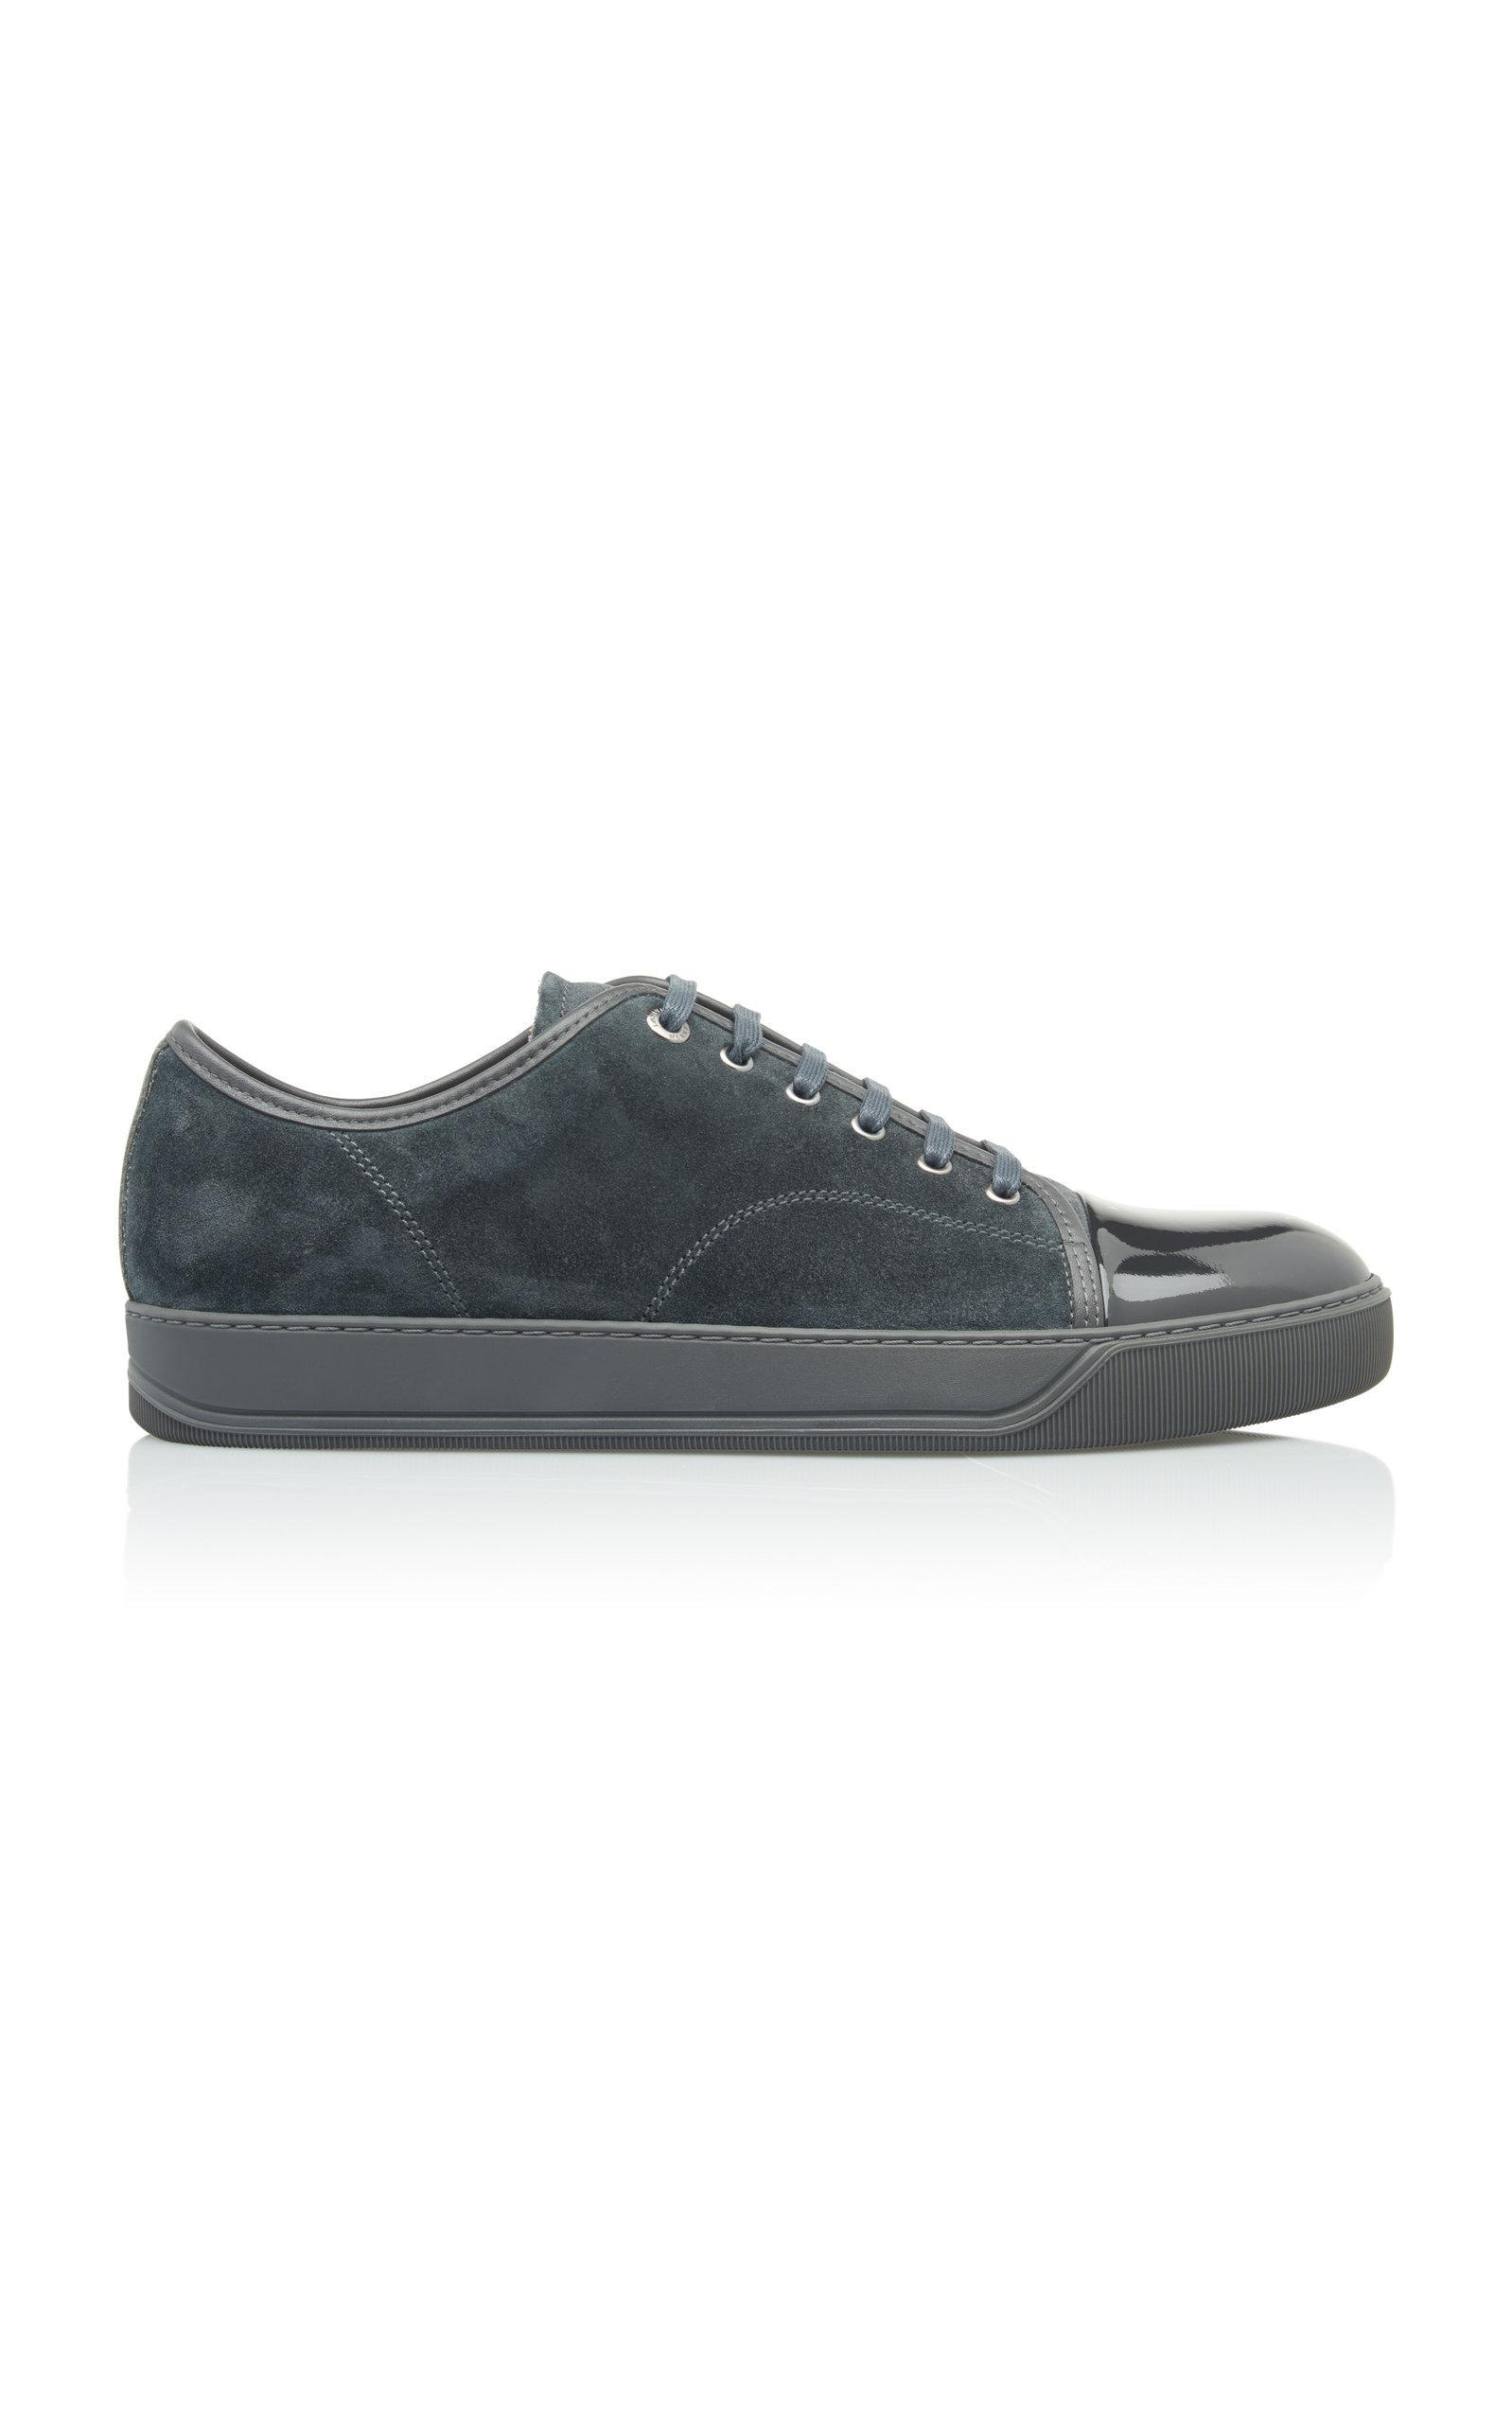 cacf85582b5 Lanvin Cap-Toe Suede And Patent Leather Sneakers In Grey | ModeSens